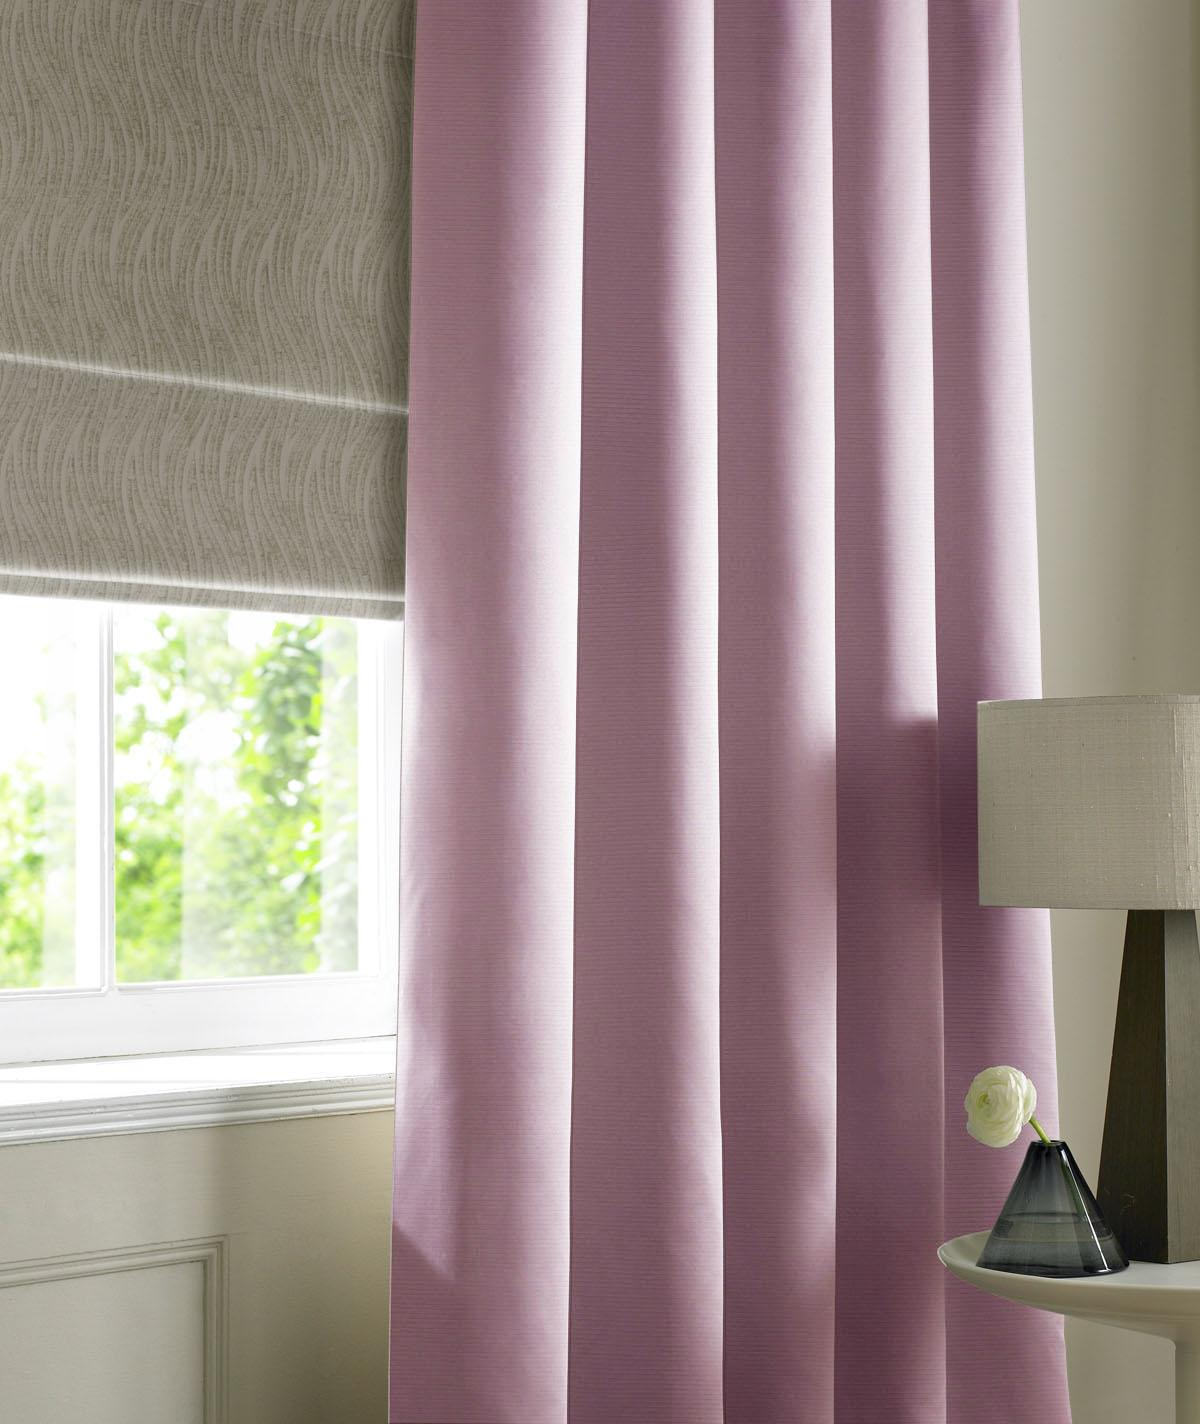 Stockists of Heather Rib Plain Made to Measure Curtains